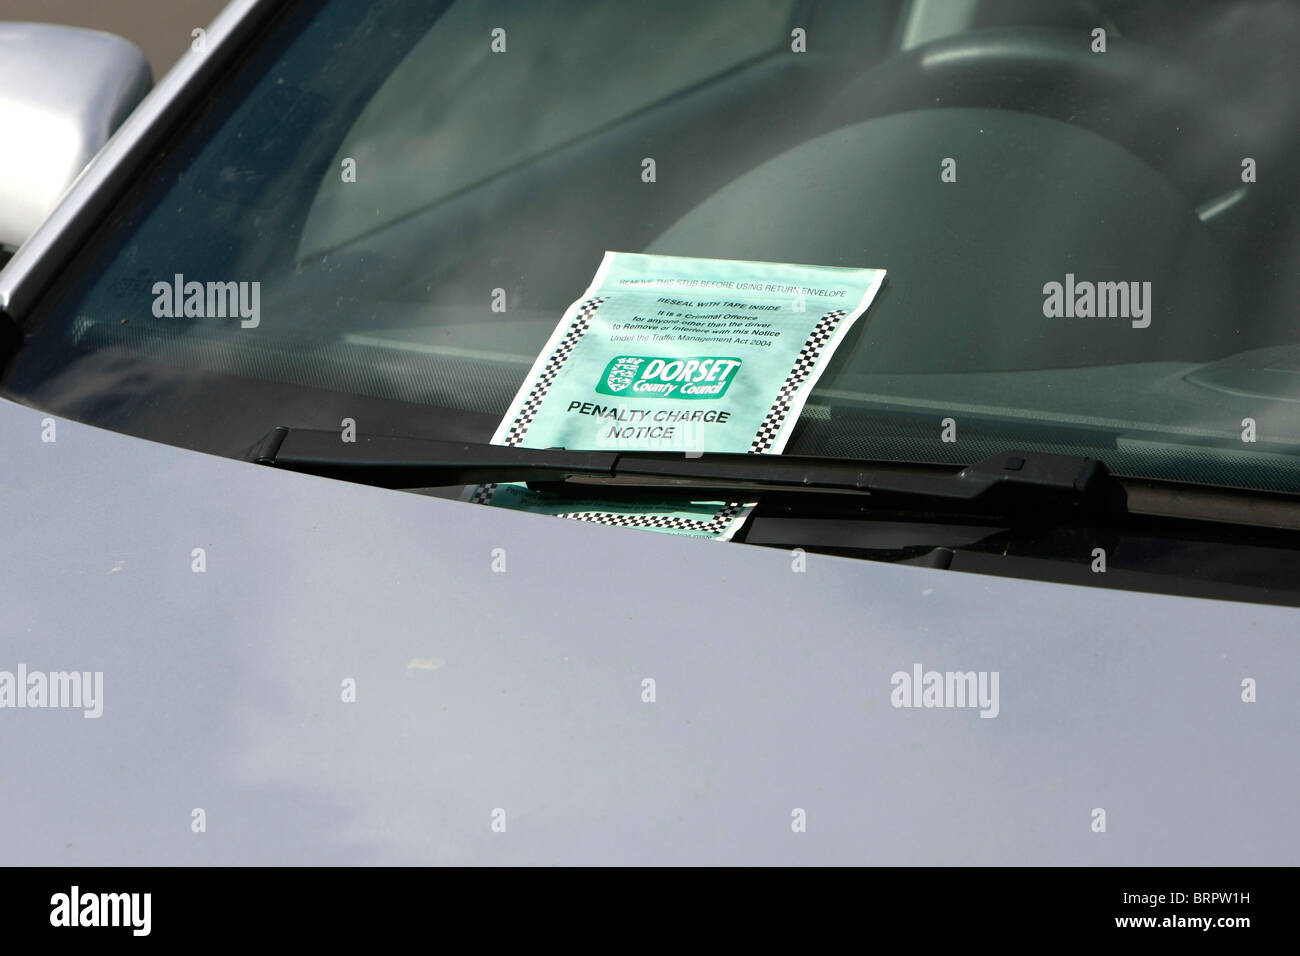 Penalty Charge Notice better known as a Parking Ticket on a windscreen of a car having been issued by a Traffic - Stock Image